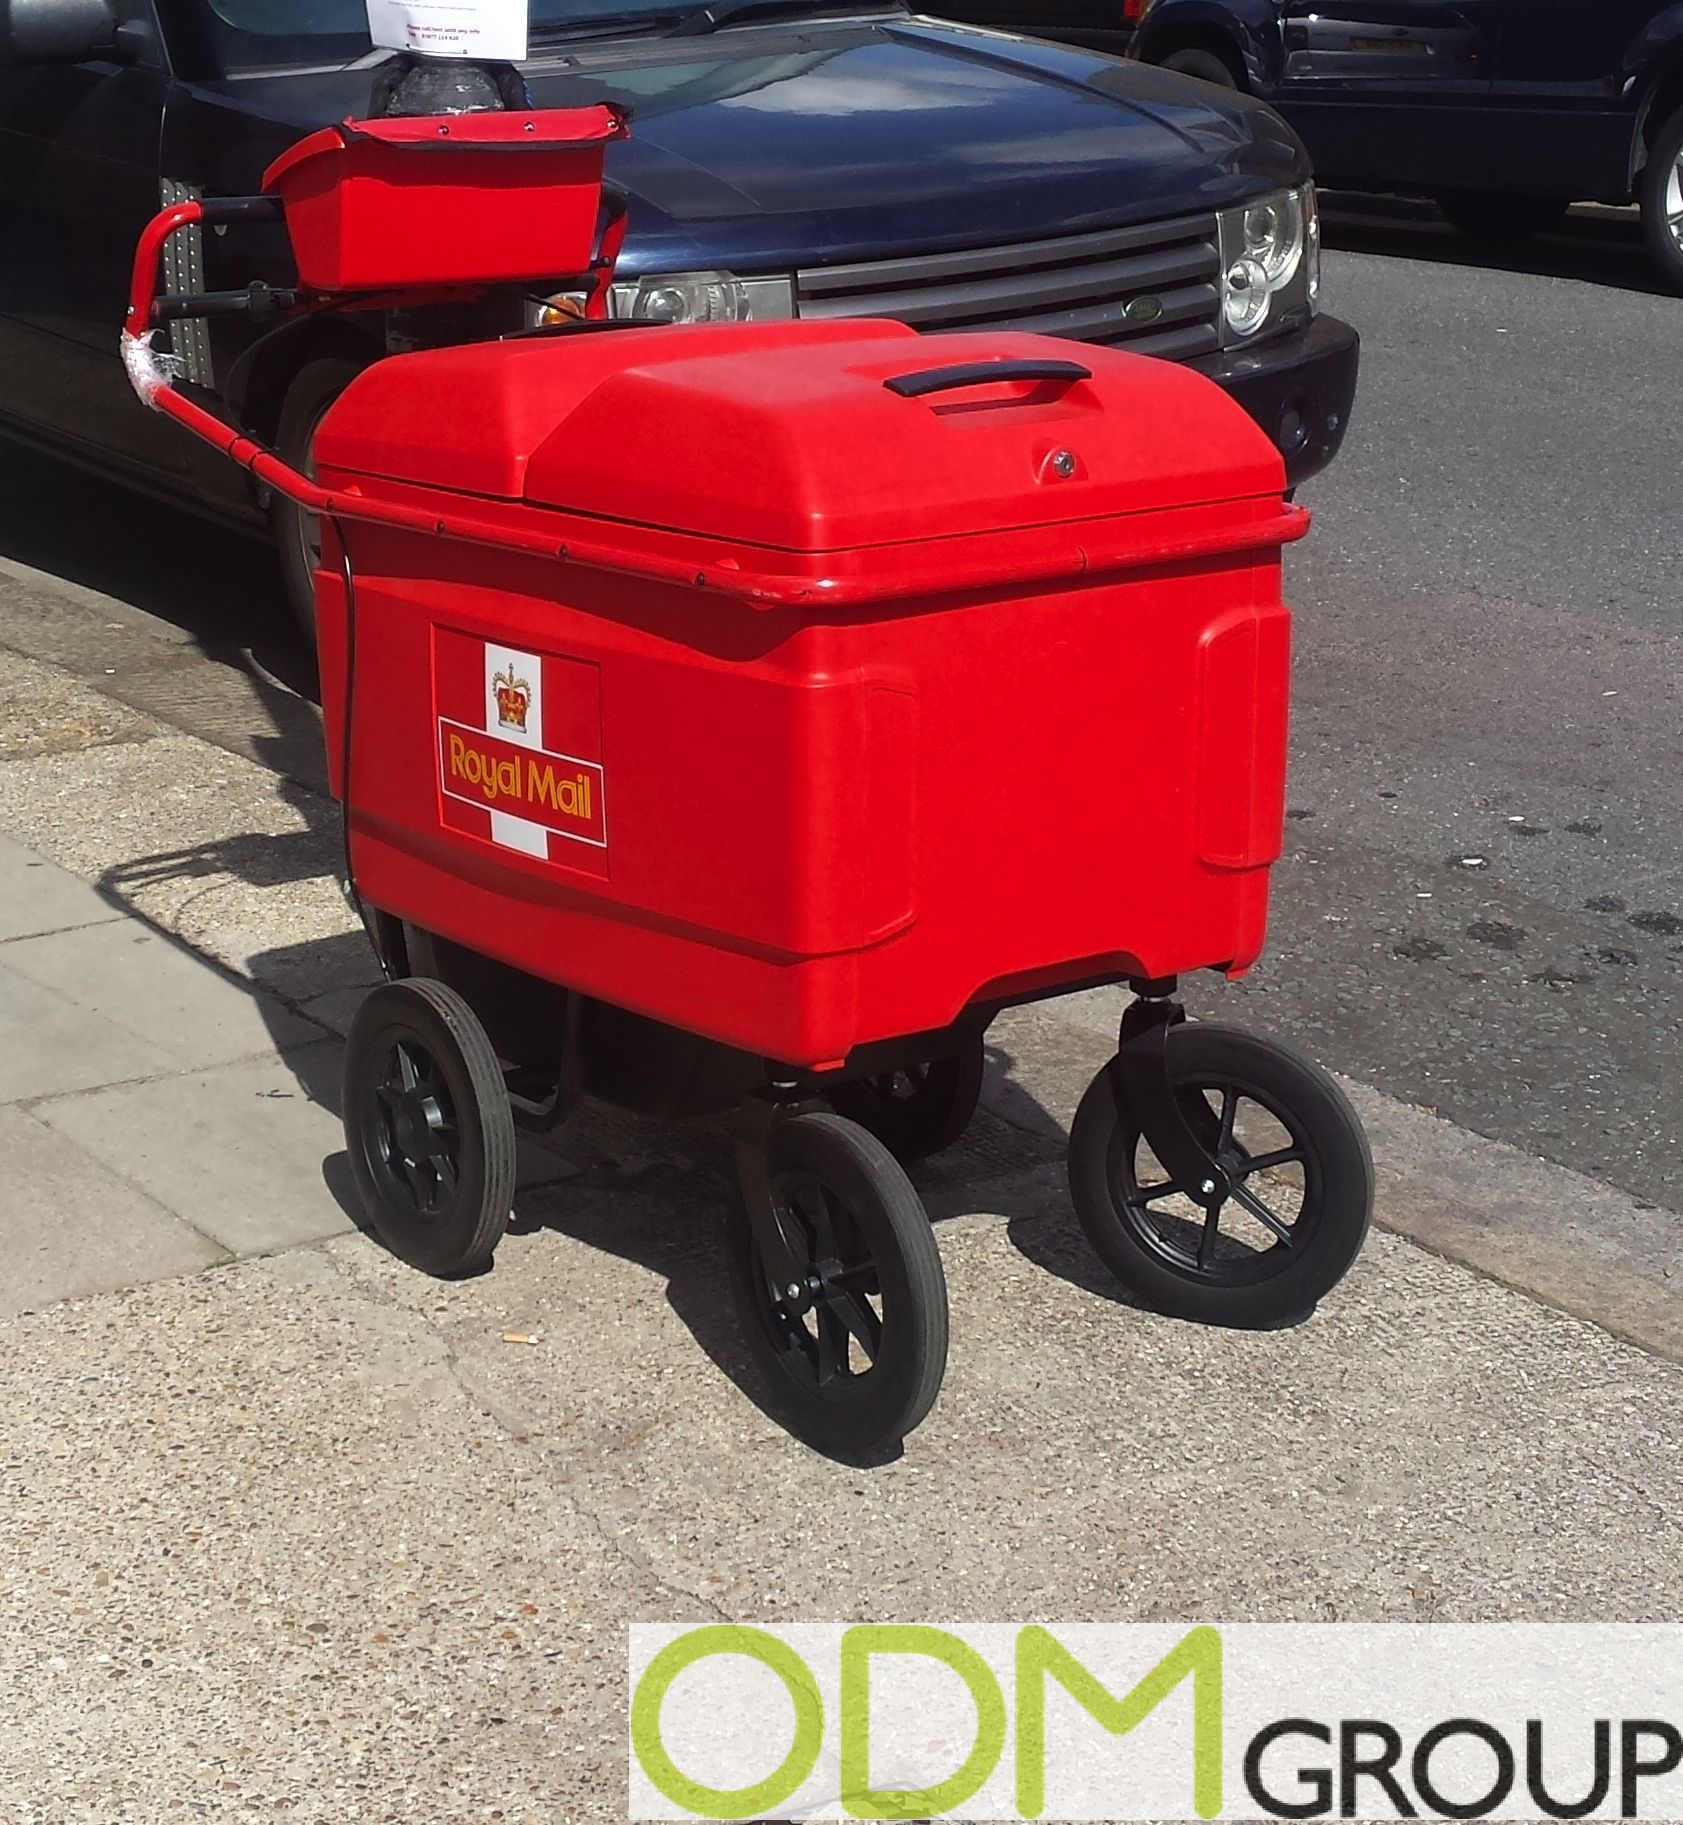 ye Catching Branded Cart by Royal Mail